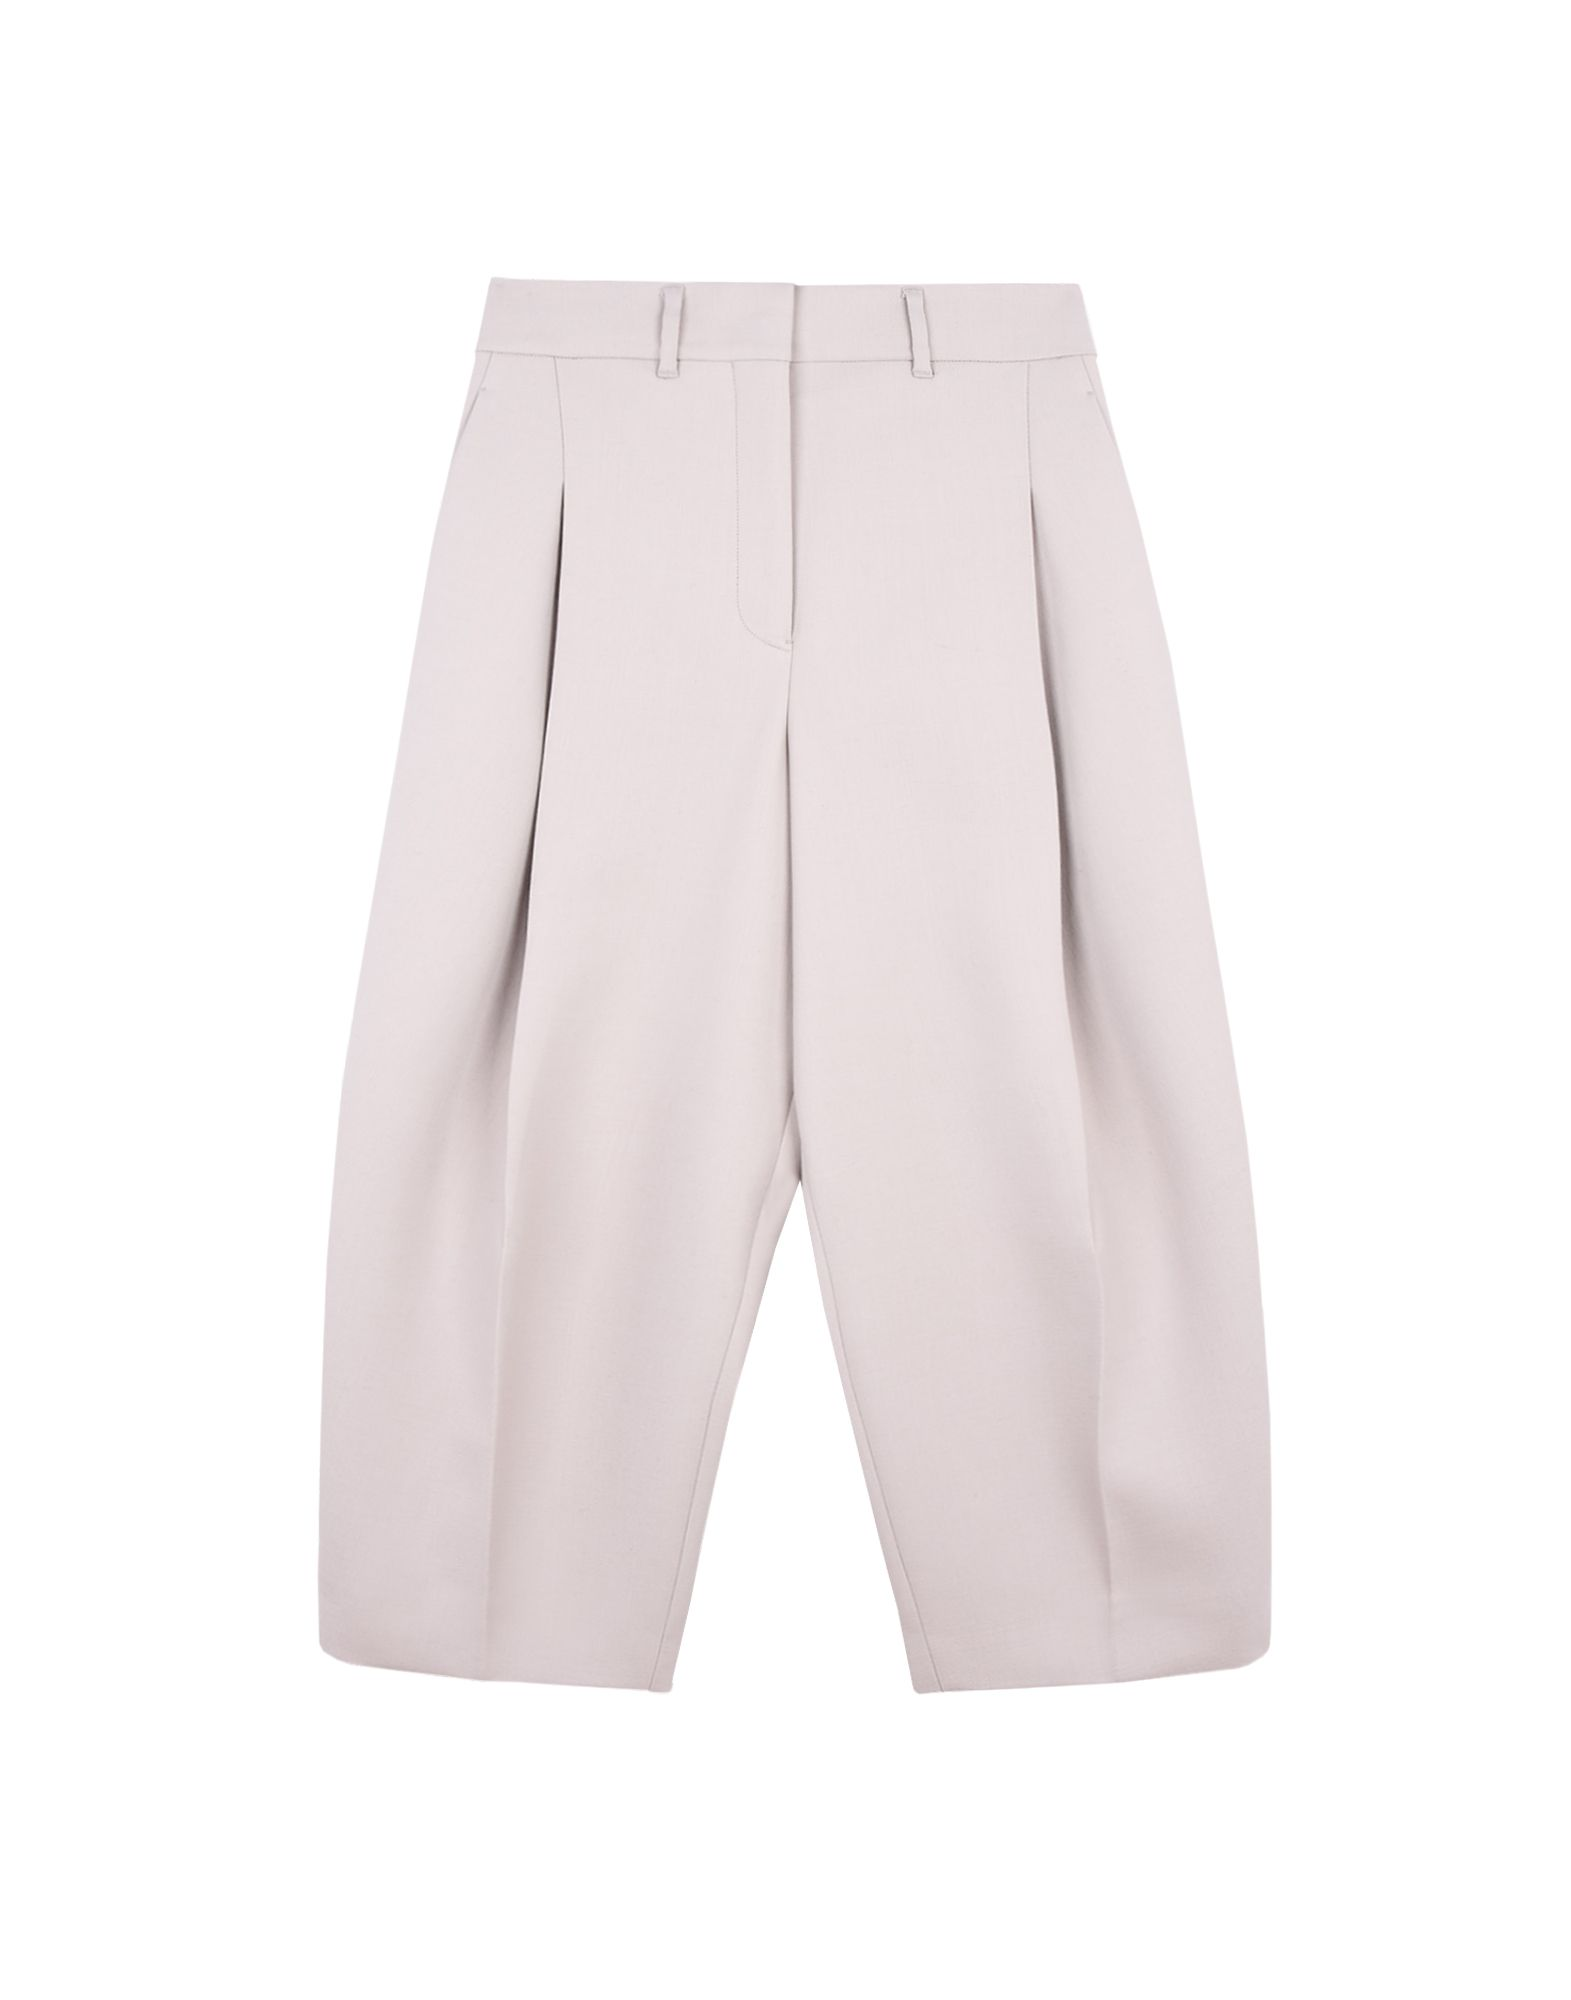 TAILORED PANTS - PALE PINK